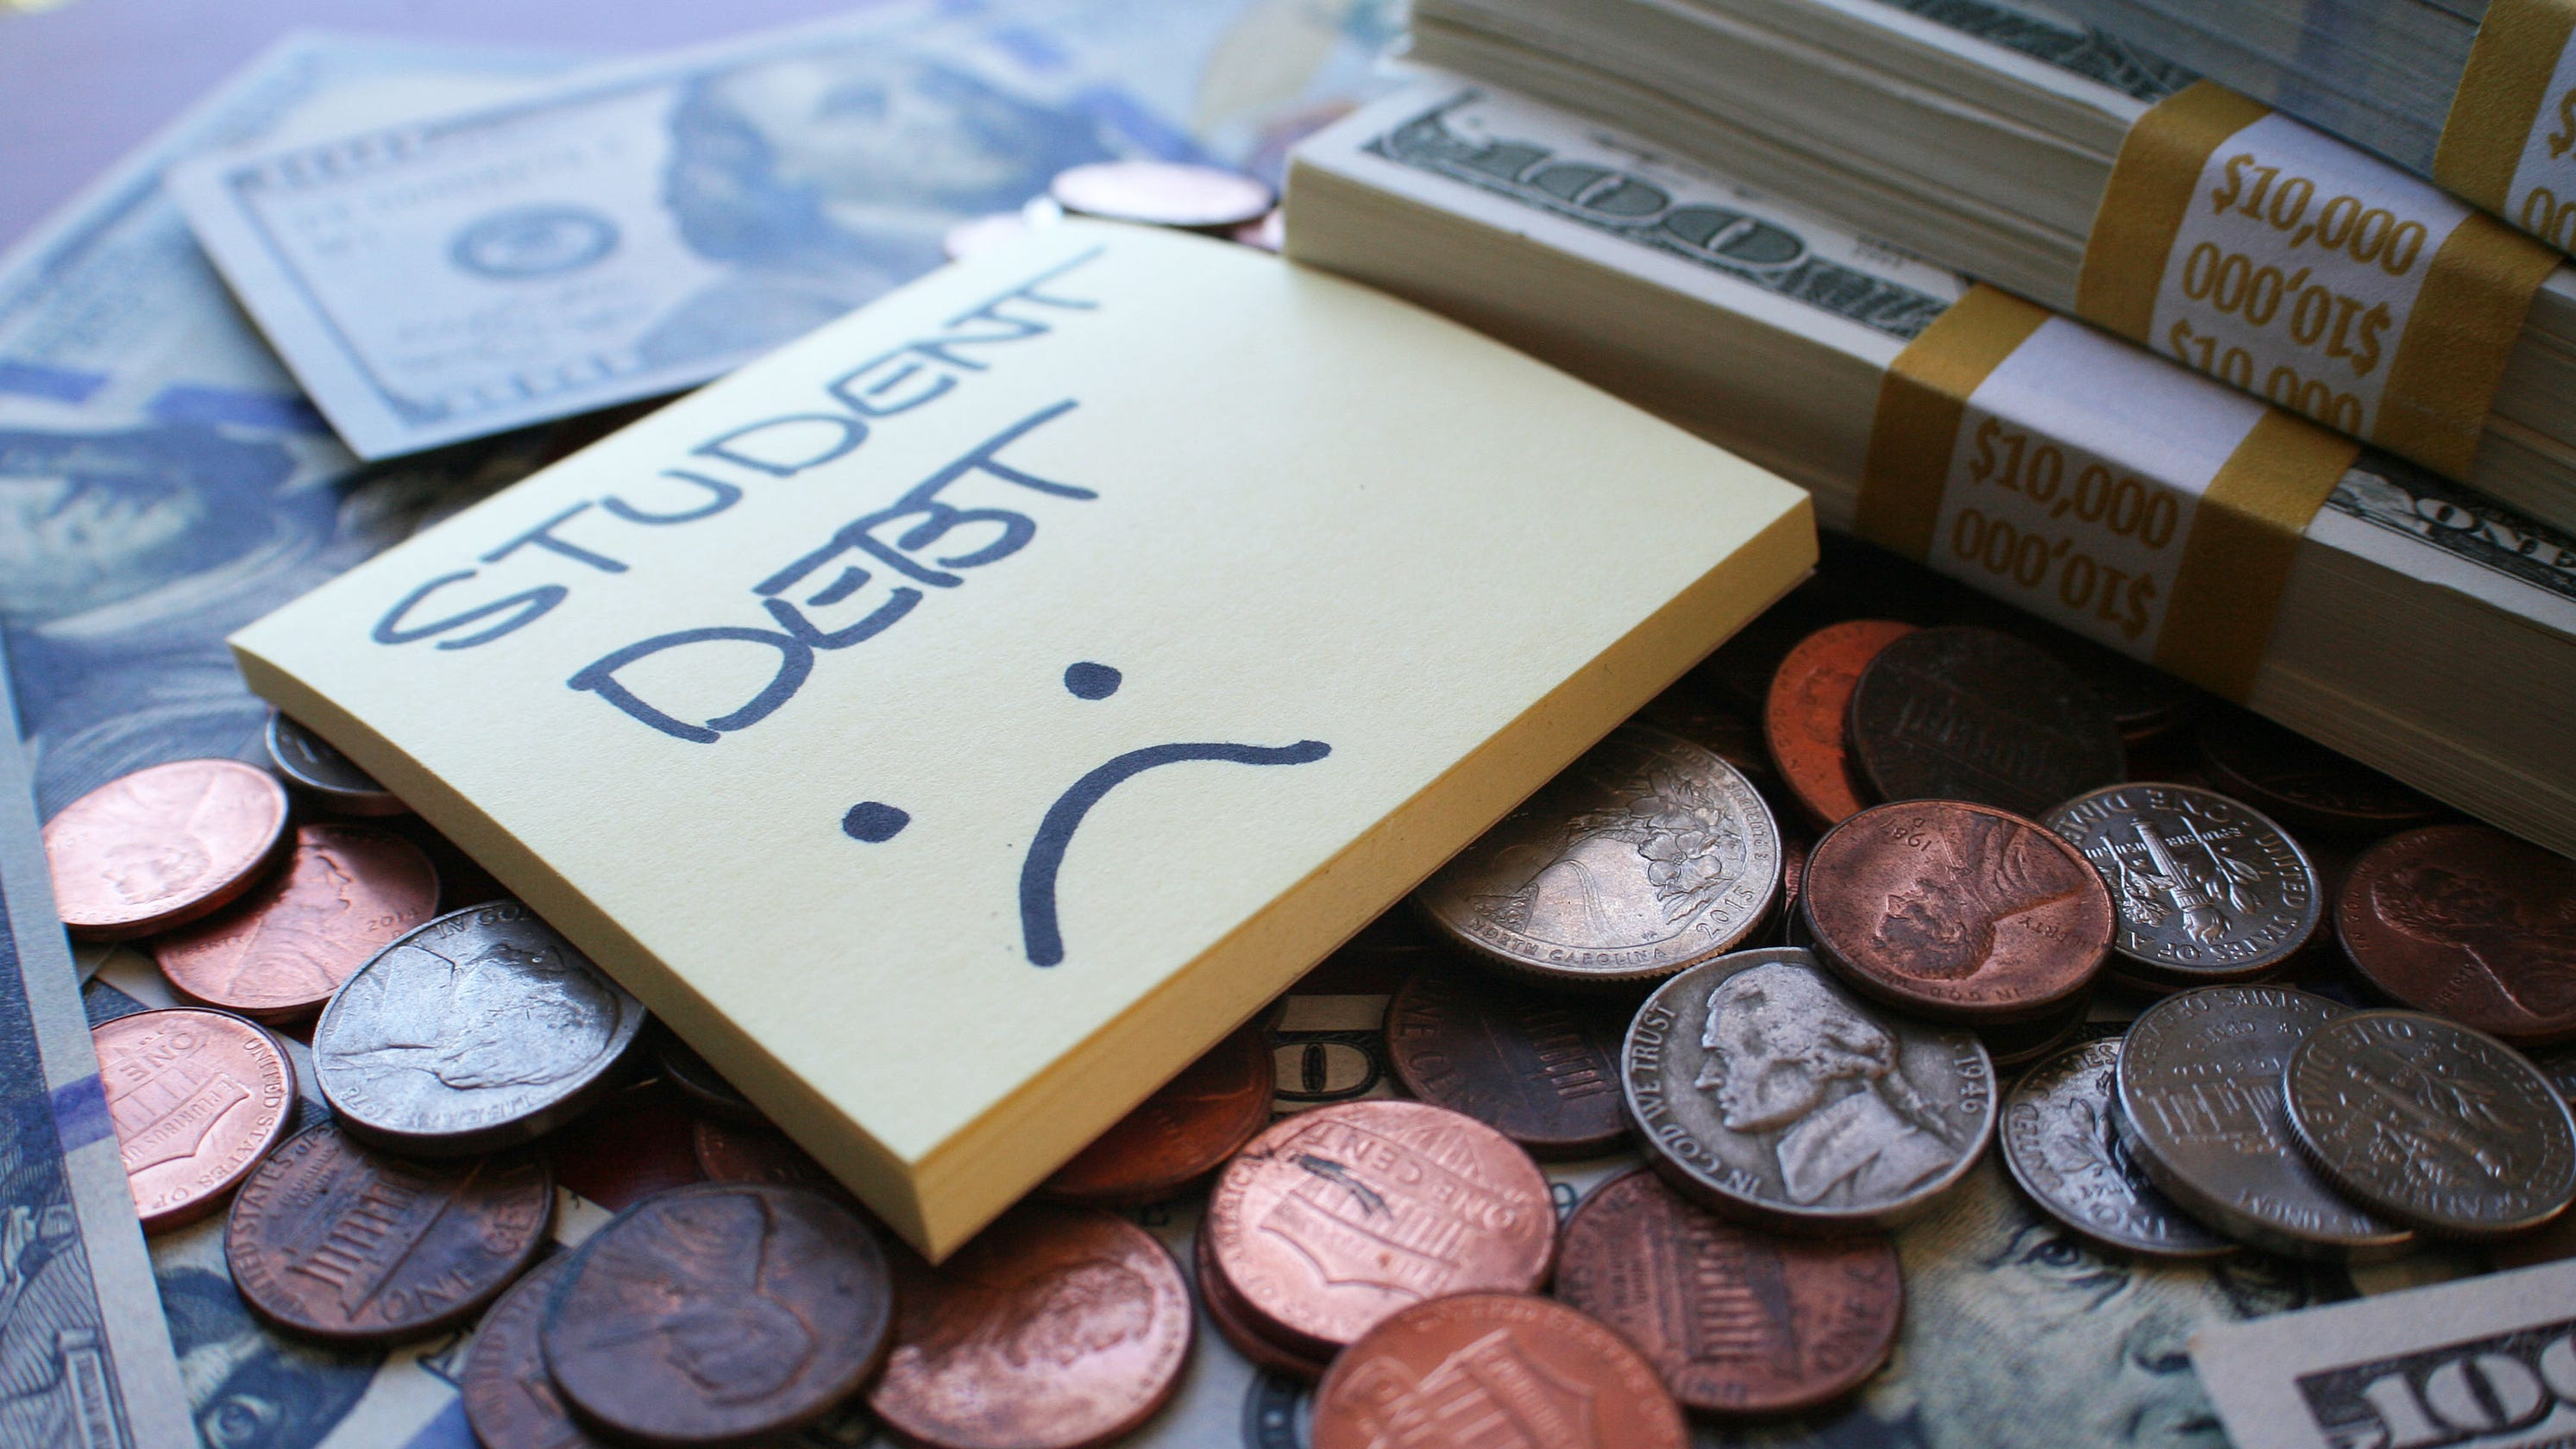 Student loan borrowers need plan for repaying debt after 9-month break